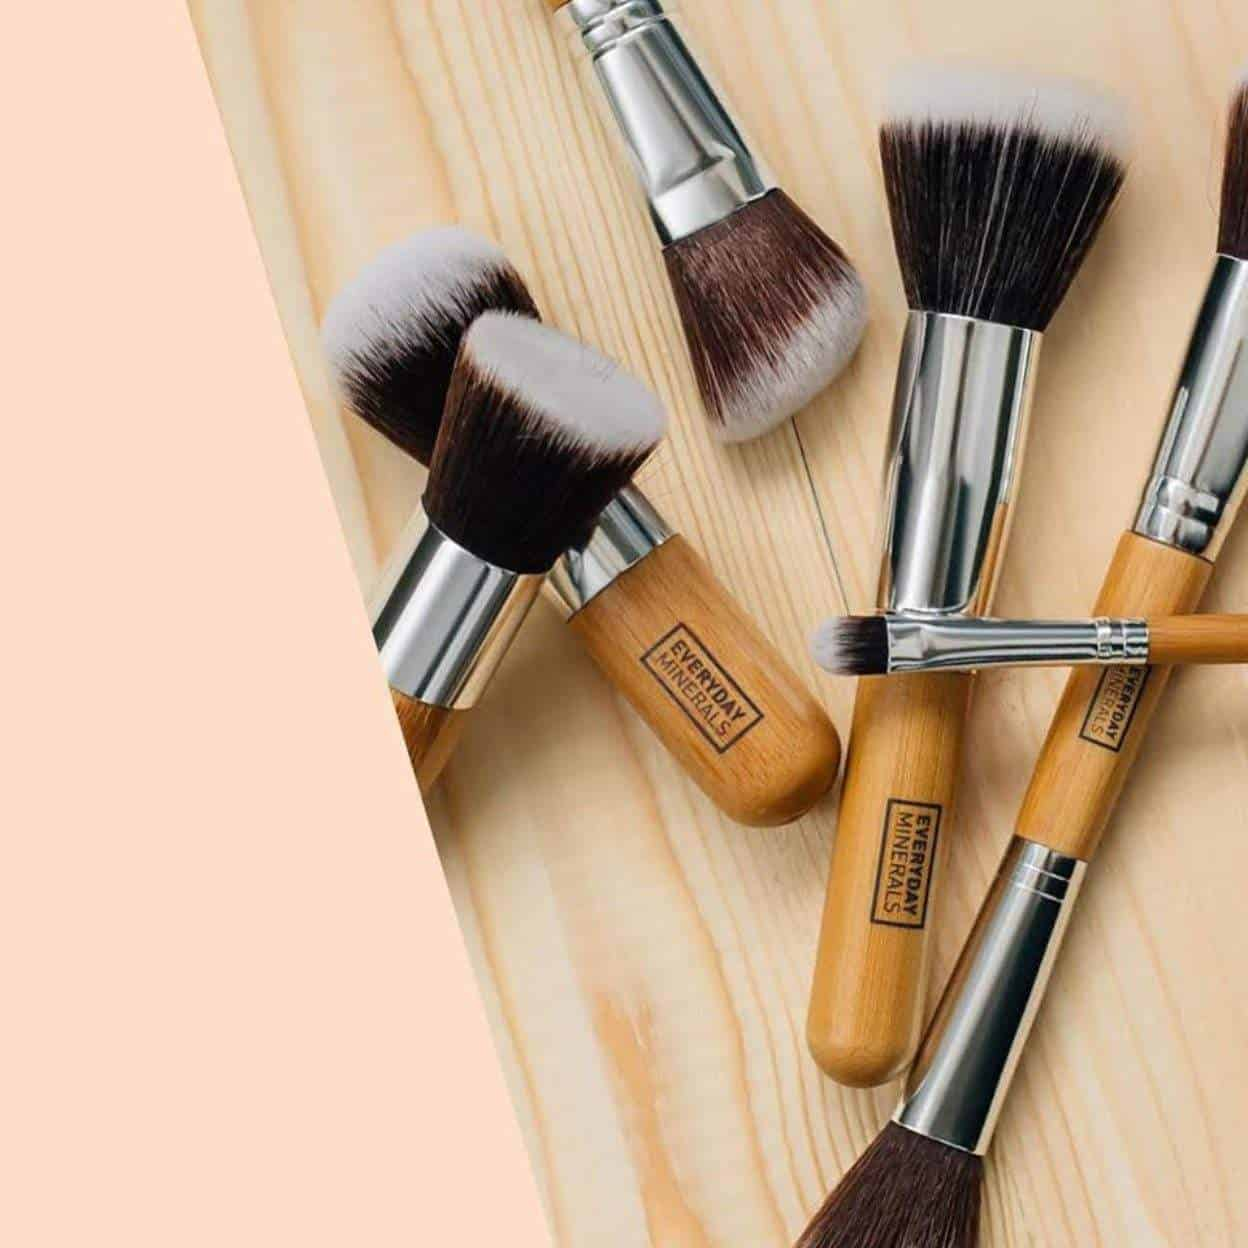 11 Vegan Makeup Brush Brands For A Flawlessly Fur Free Face Image by Everyday Minerals #veganmakeup #makeupbrush